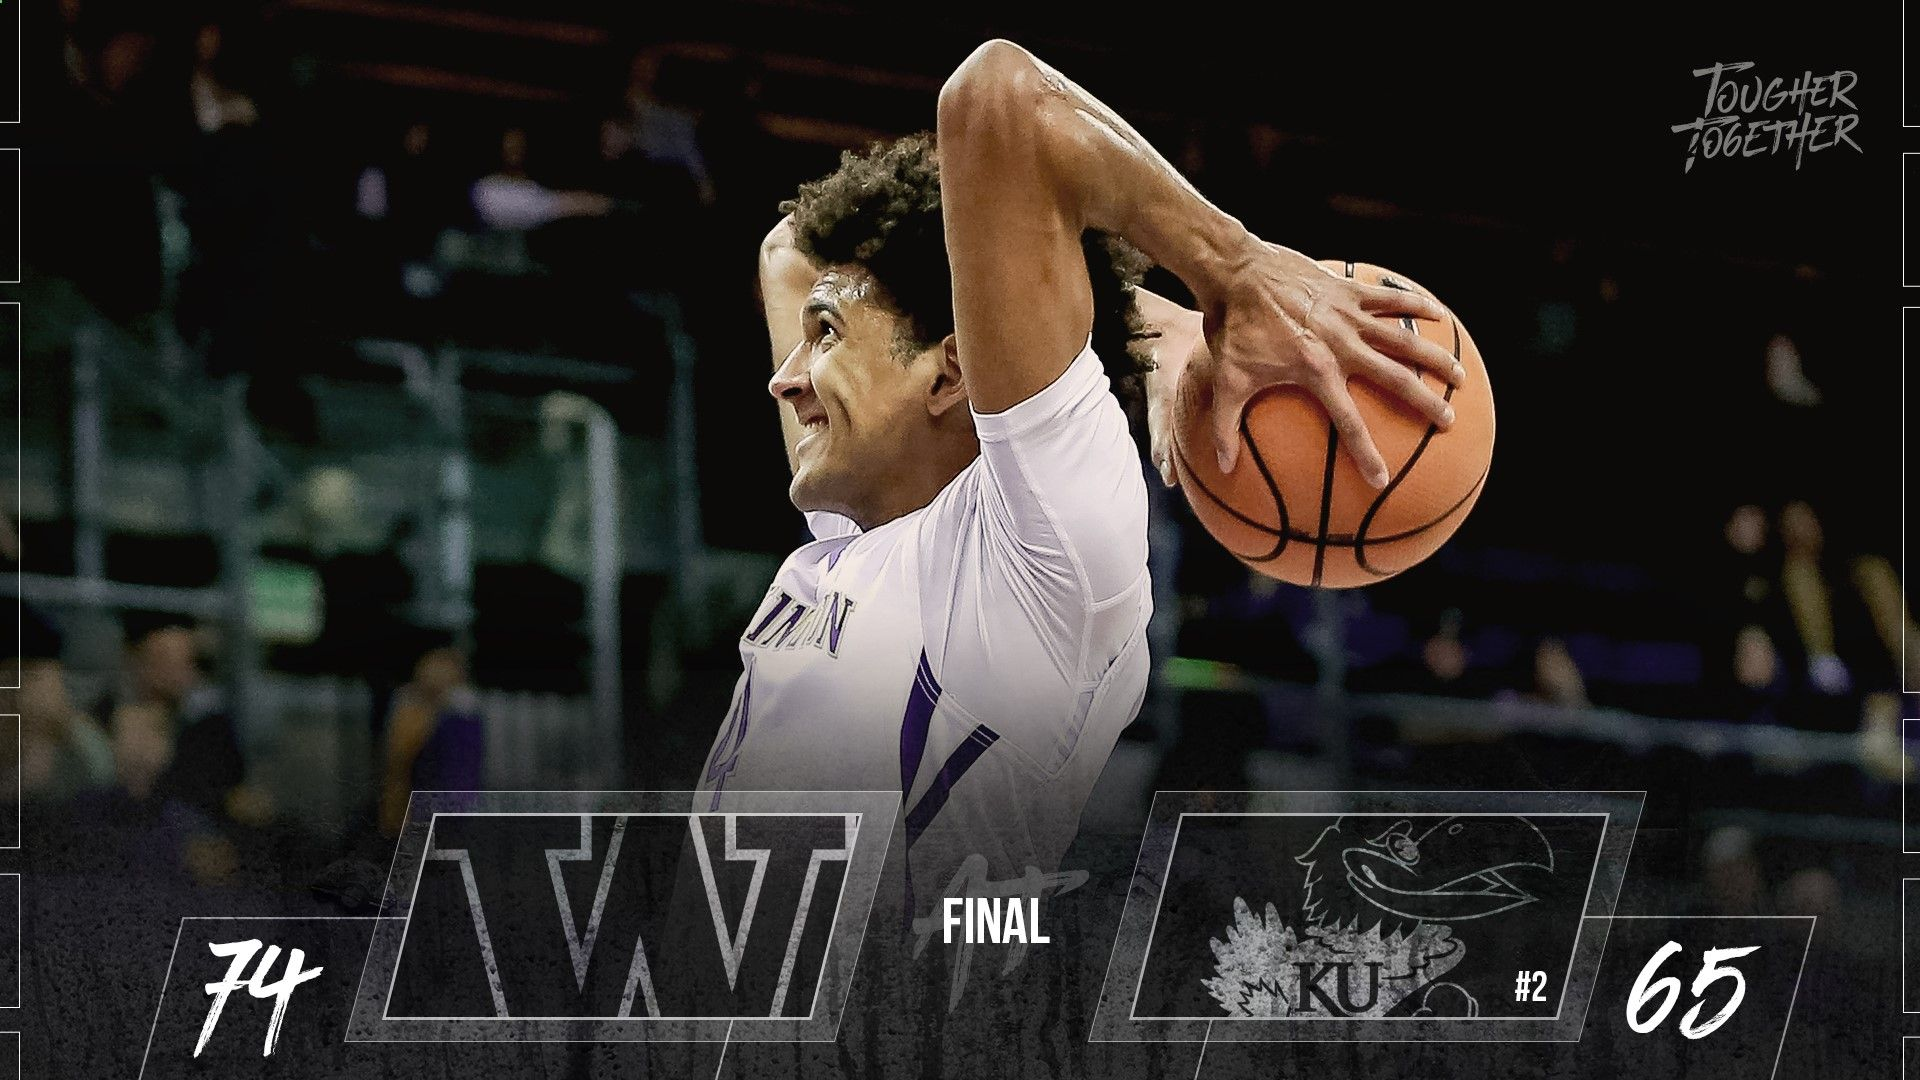 Scoring Basketball Academy - Thybulle Scores 19 As UW Stuns No. 2 Kansas, 74-65 - TSA Is a Complete Ball Handling, Shooting, And Finishing System!  Here's What's Included...